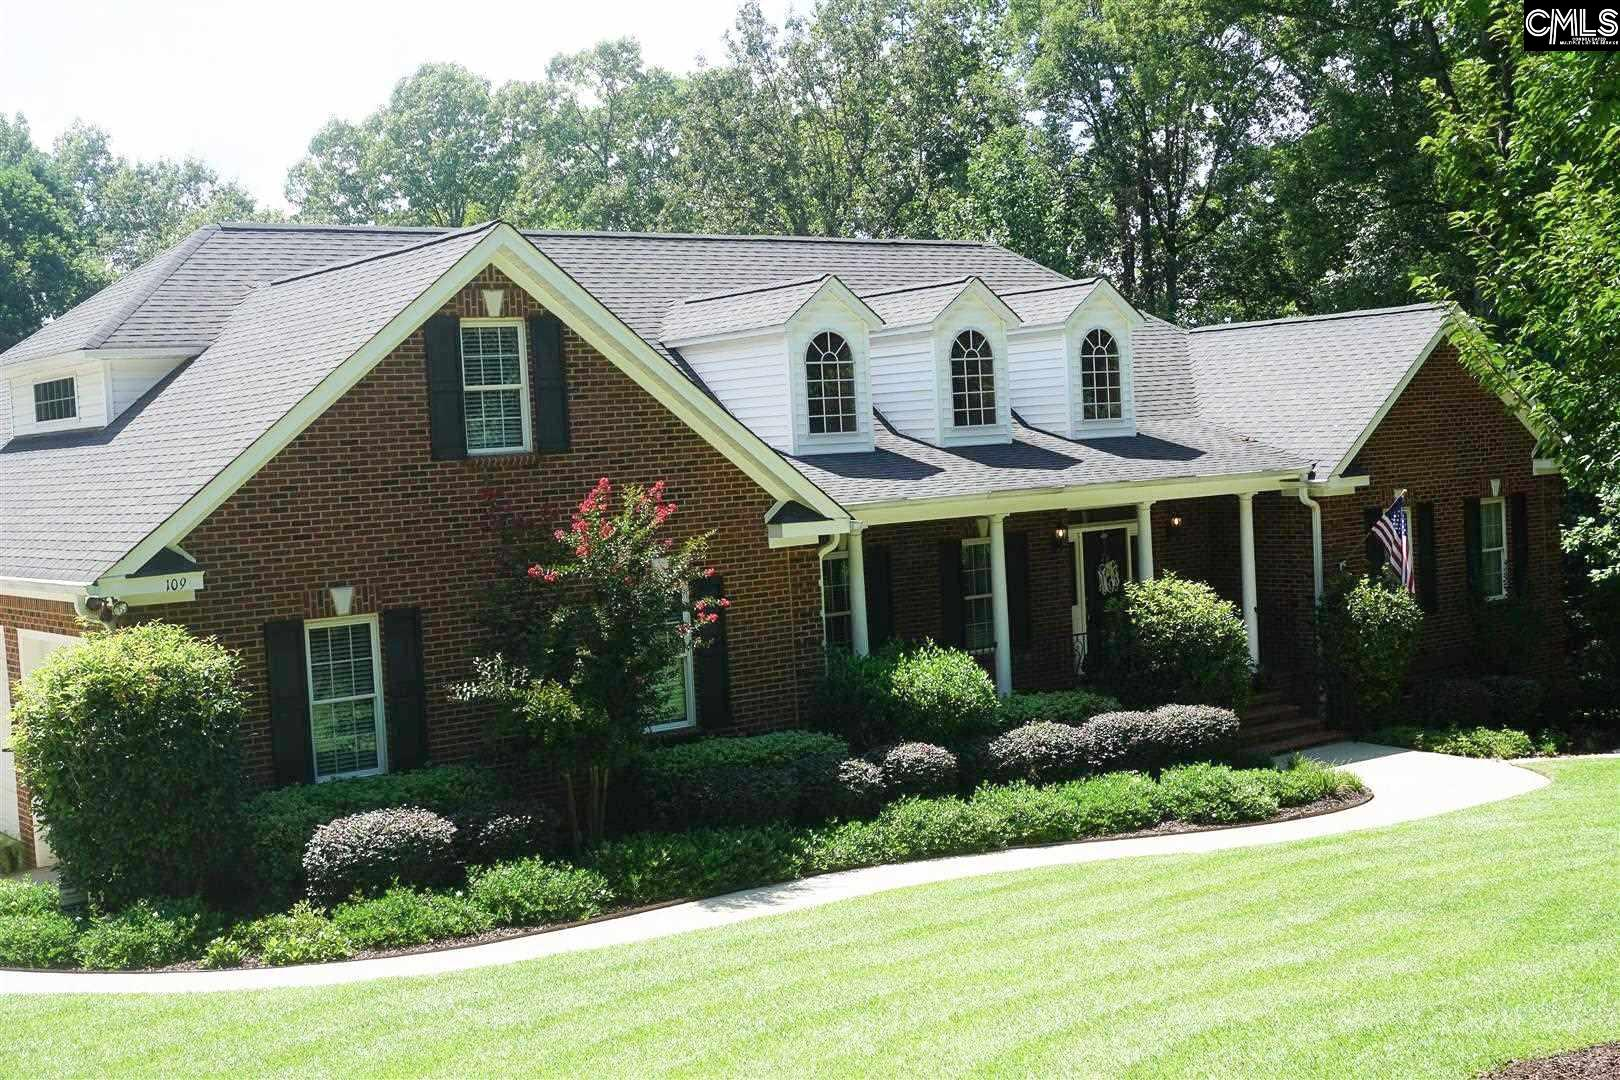 109 Alston Lexington, SC 29072